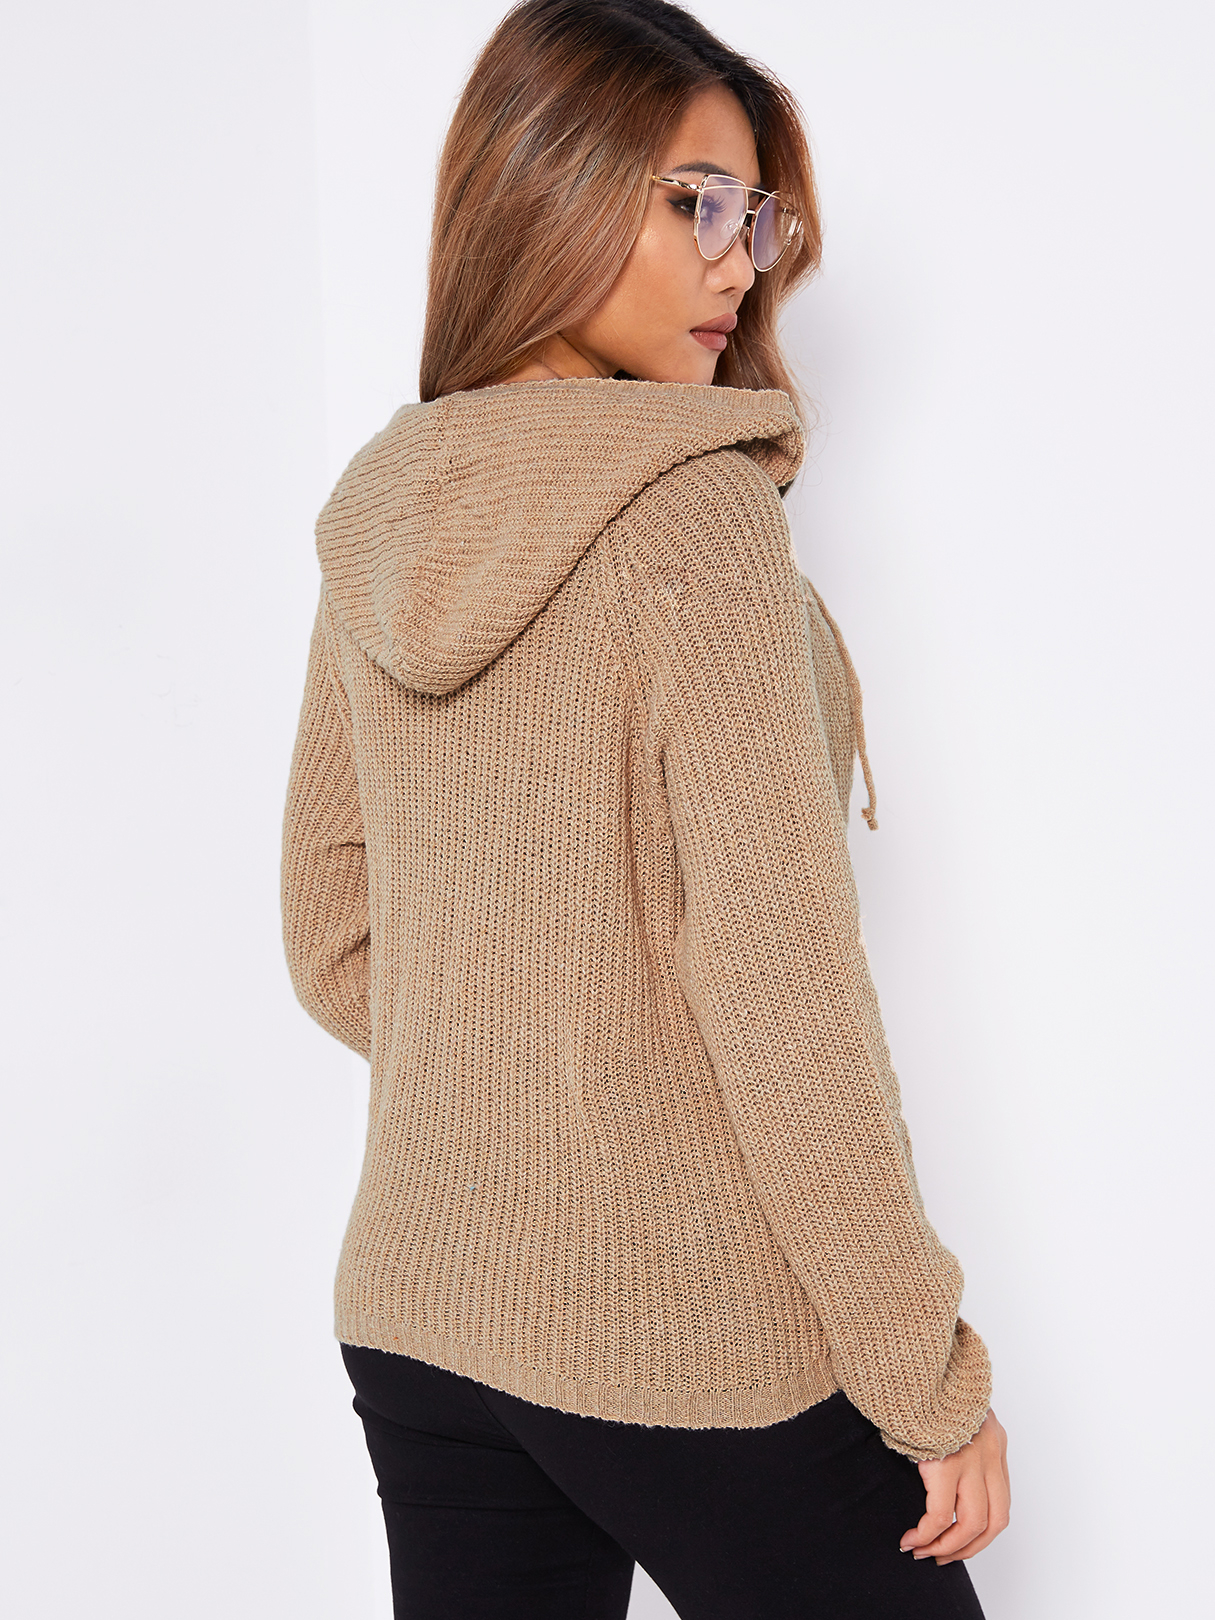 Khaki Hooded Design Lace Up Details V-neck Long Sleeves Sweaters -  yoins.com - imall.com a72474be4